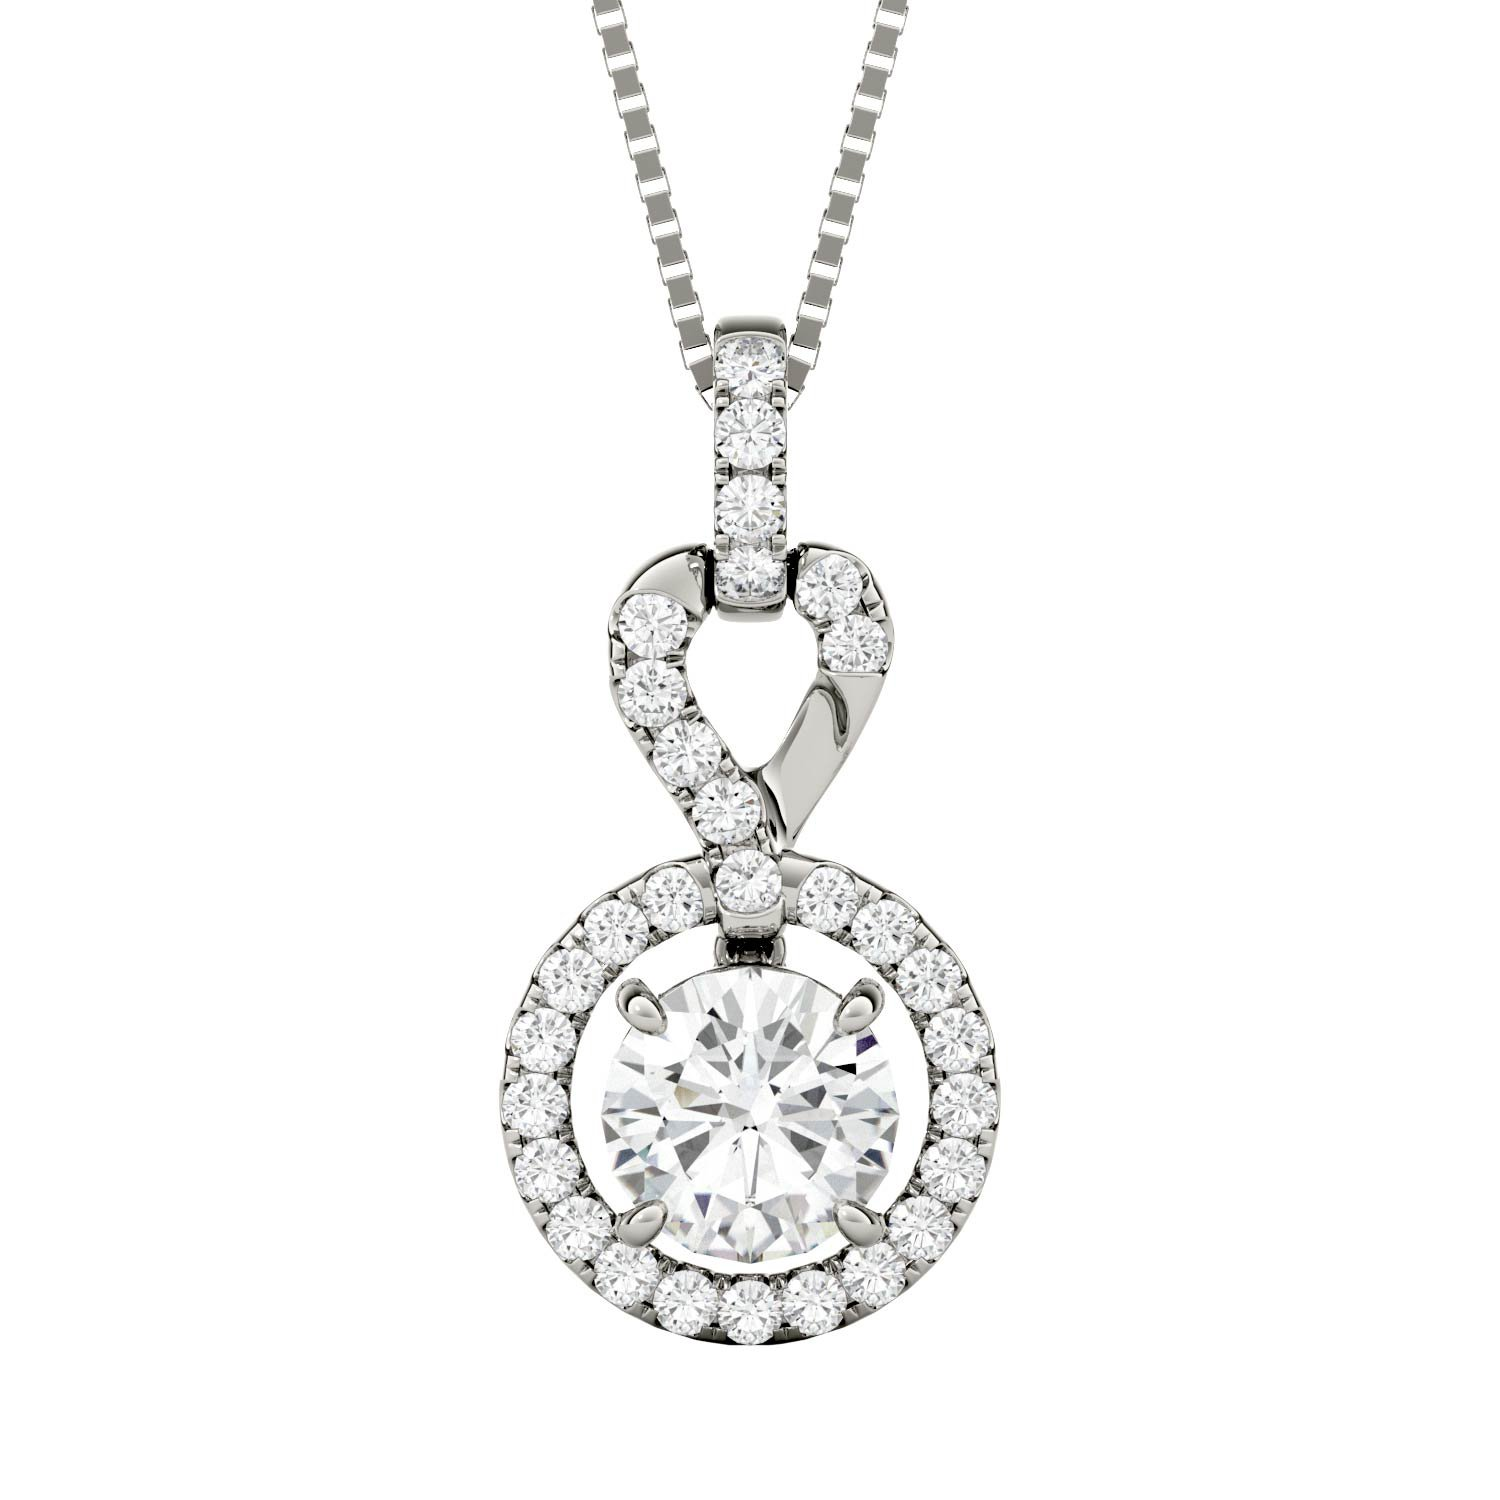 Forever Brilliant Round 6.5mm Moissanite Pendant Necklace, 1.30cttw DEW By Charles & Colvard